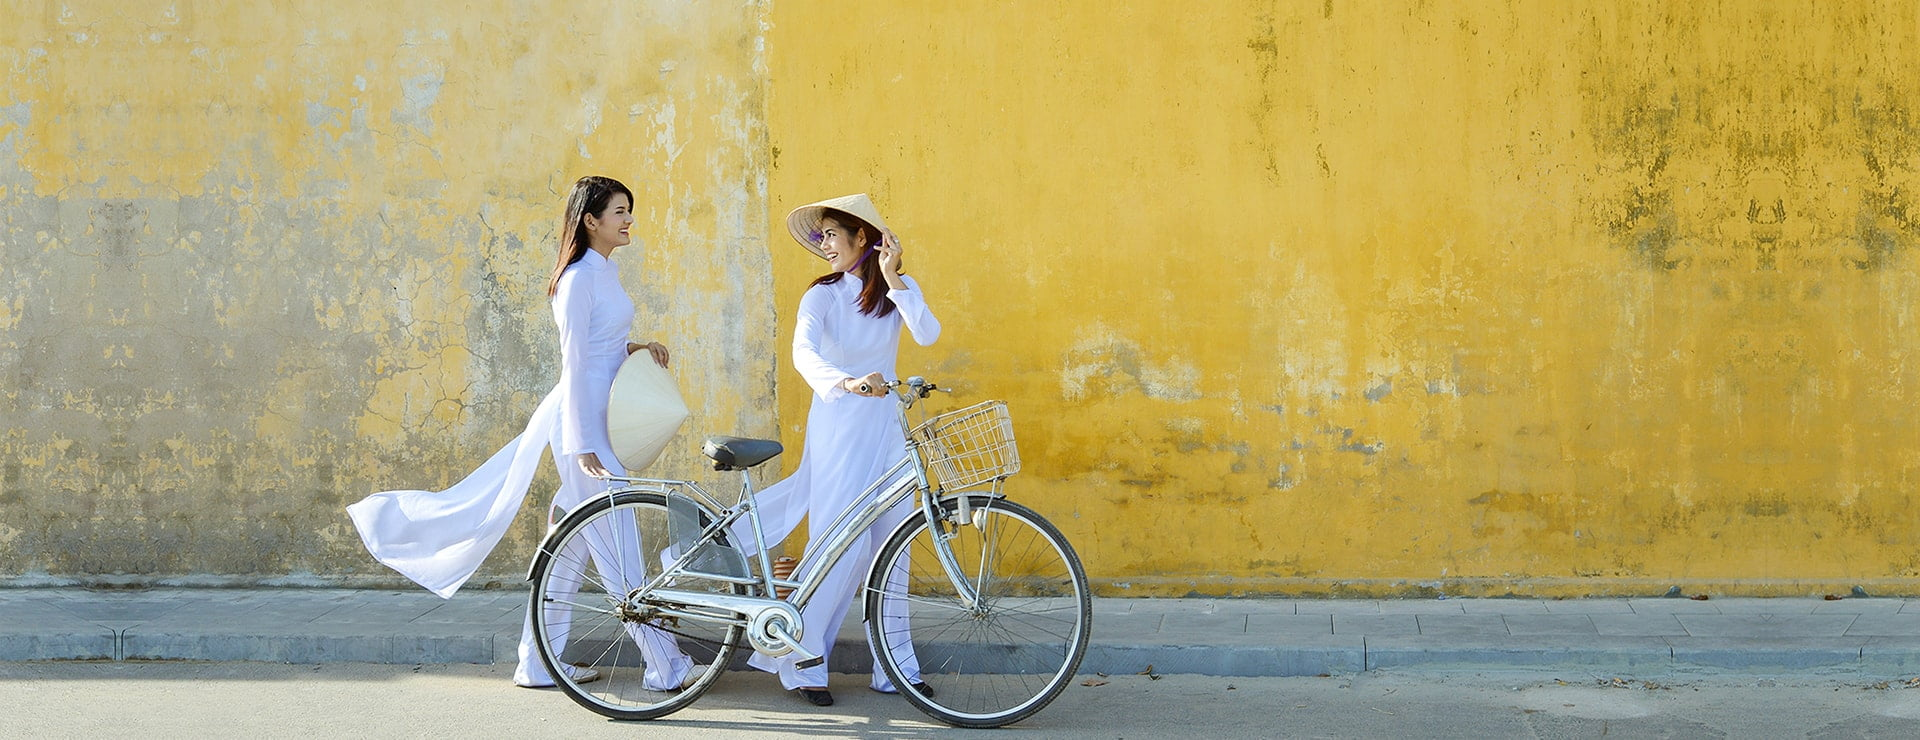 Top Things To Do In Hoi An, Vietnam